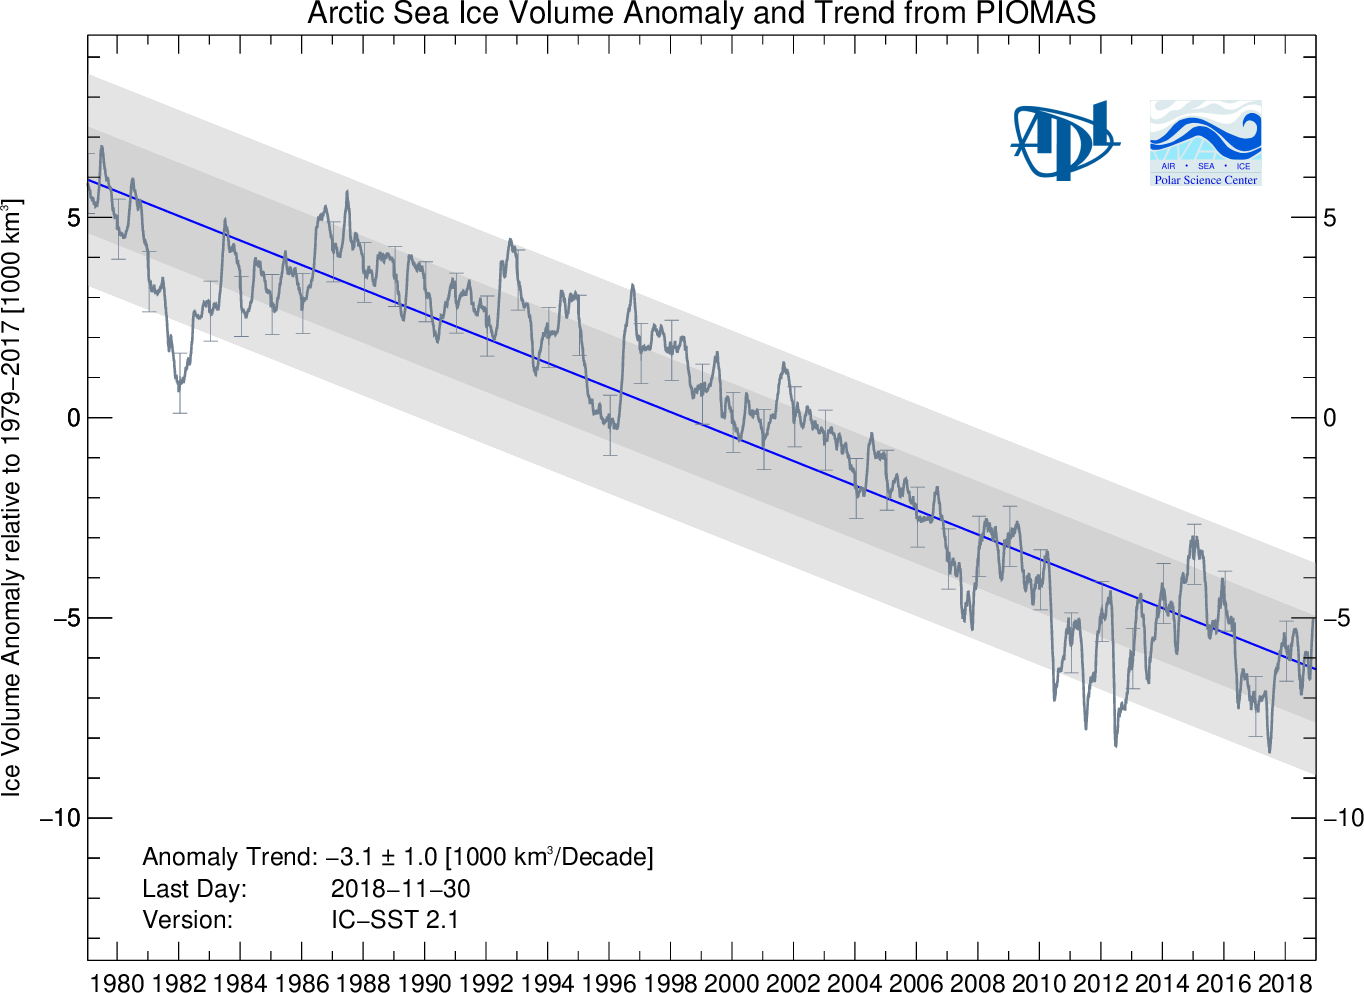 Graph showing Arctic sea-ice volume anomalies from 1979 through 2018 from PIOMAS.